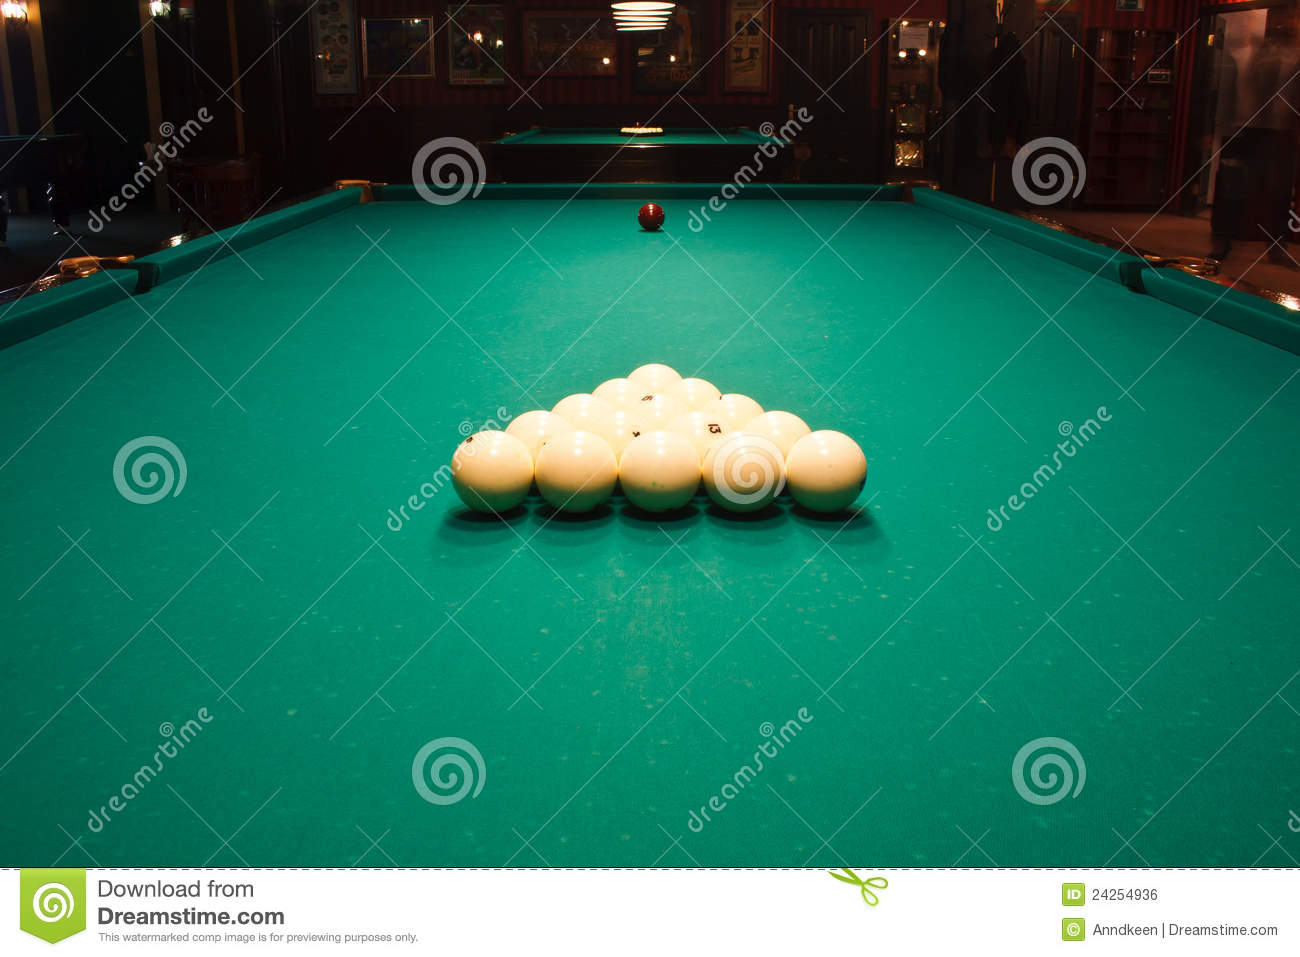 Russian Billiard Table With Balls Royalty Free Stock Image